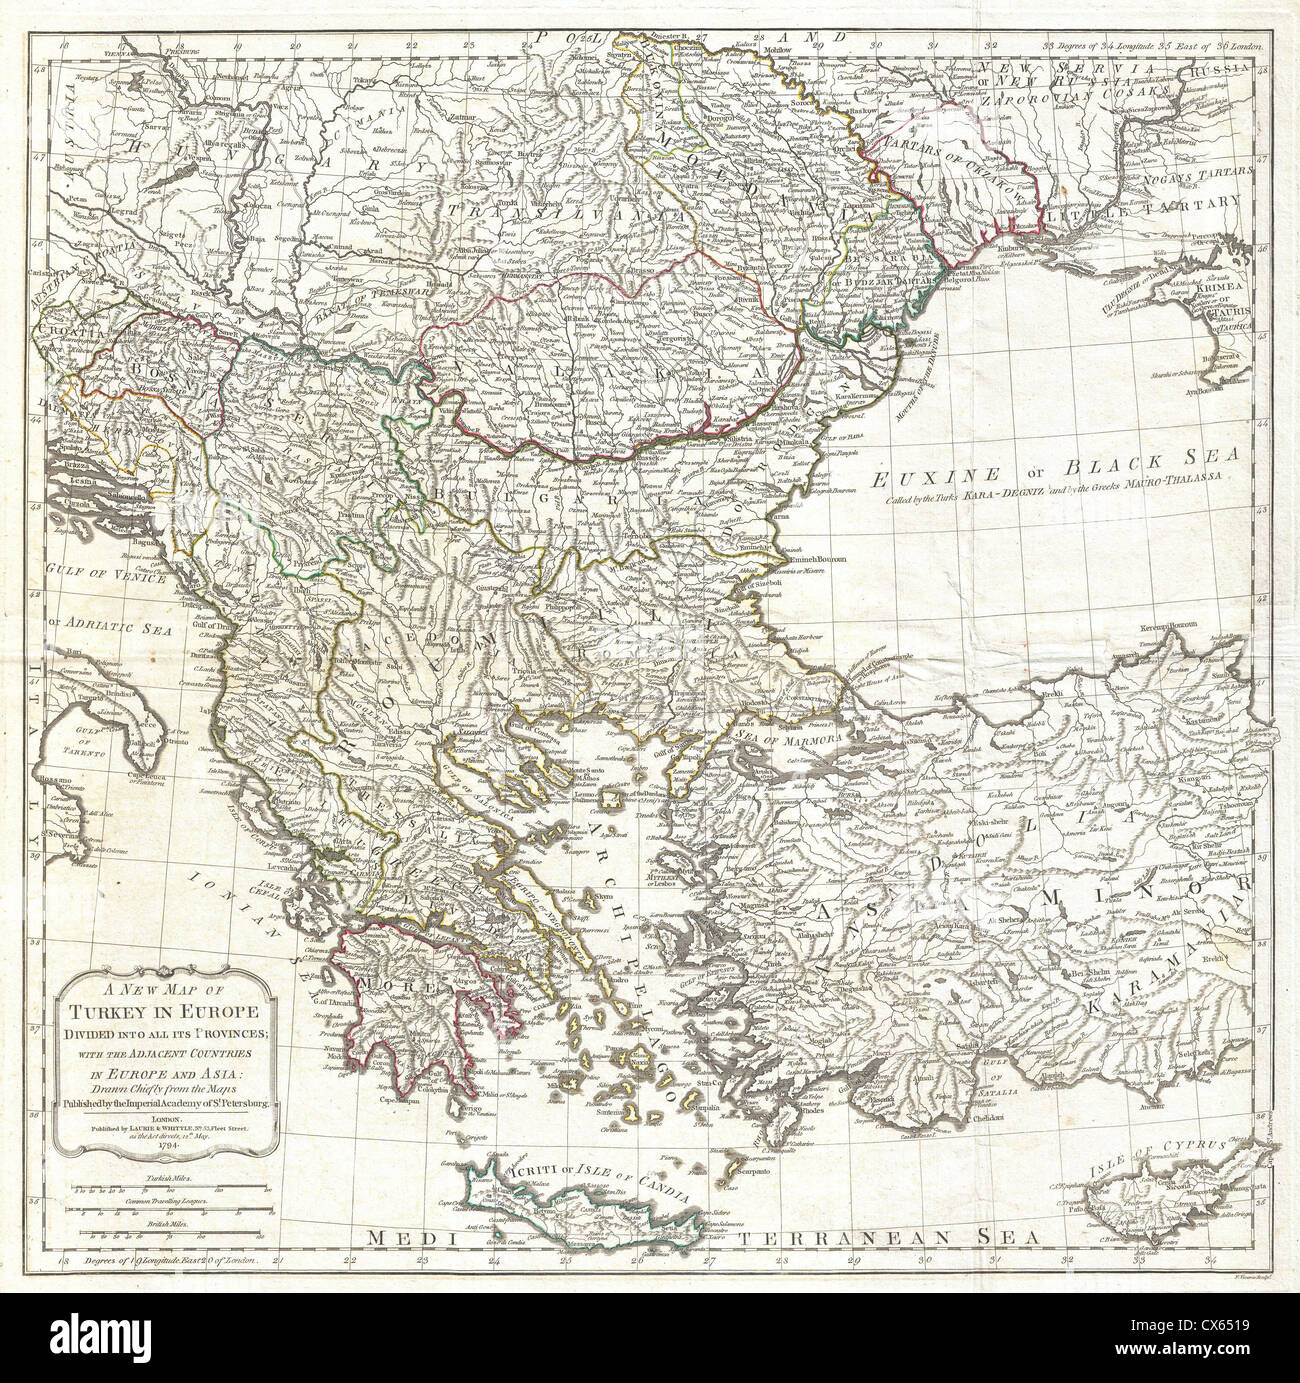 Map of greece and turkey stock photos map of greece and turkey 1794 laurie and whittle map of greece turkey andamp the balkans stock image gumiabroncs Gallery